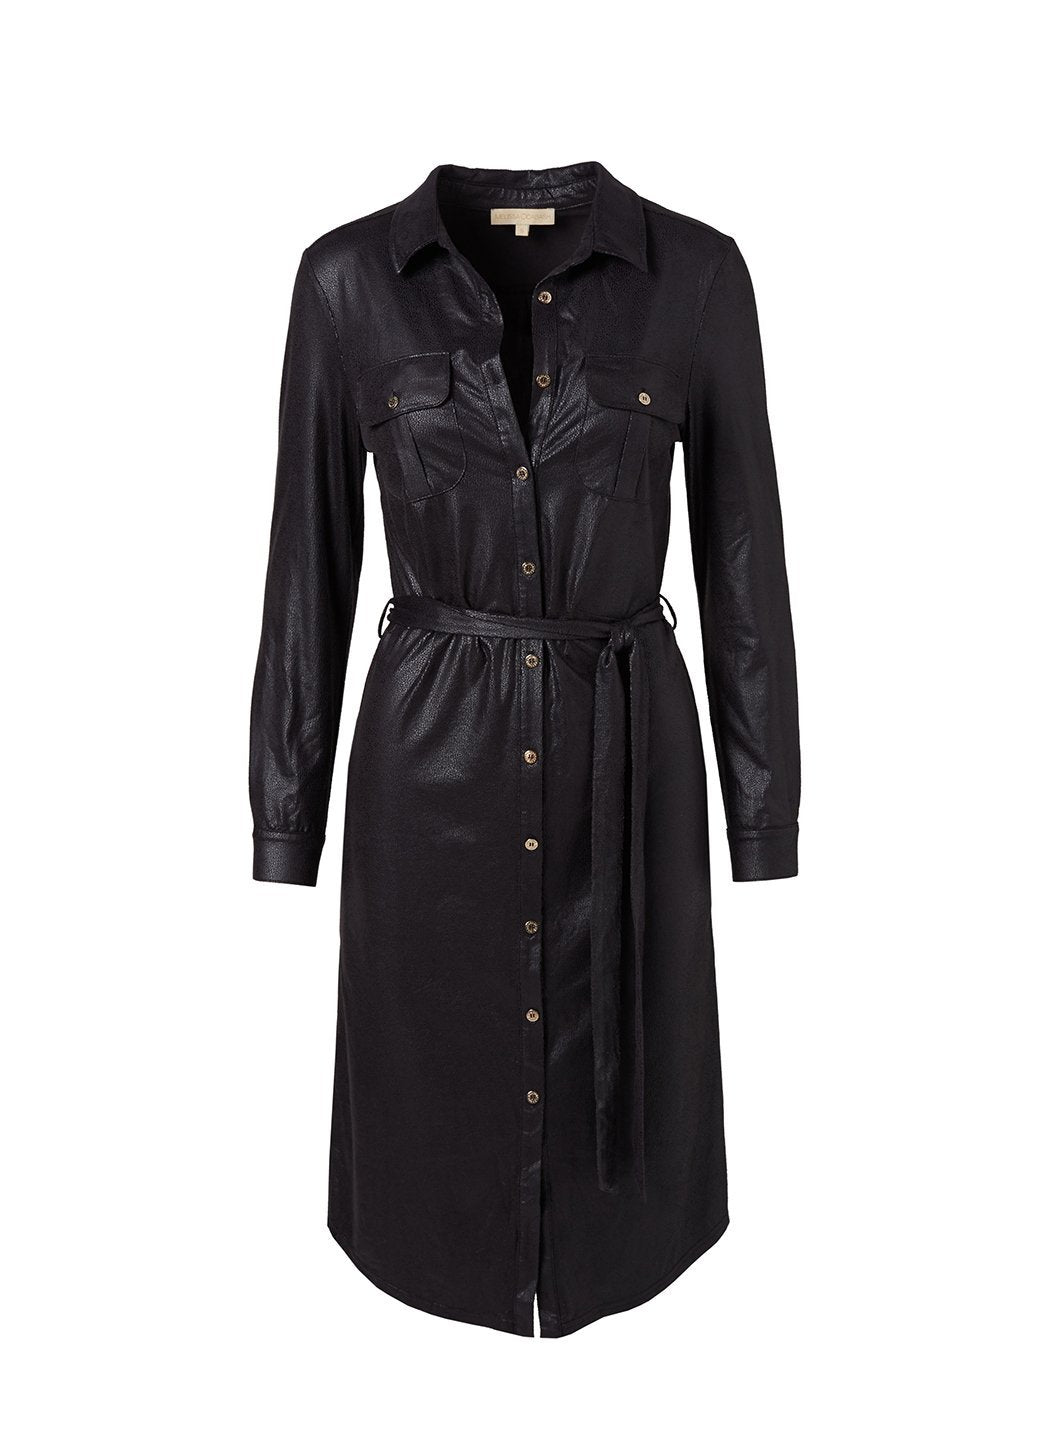 Loren Black Leather Effect Shirt Dress